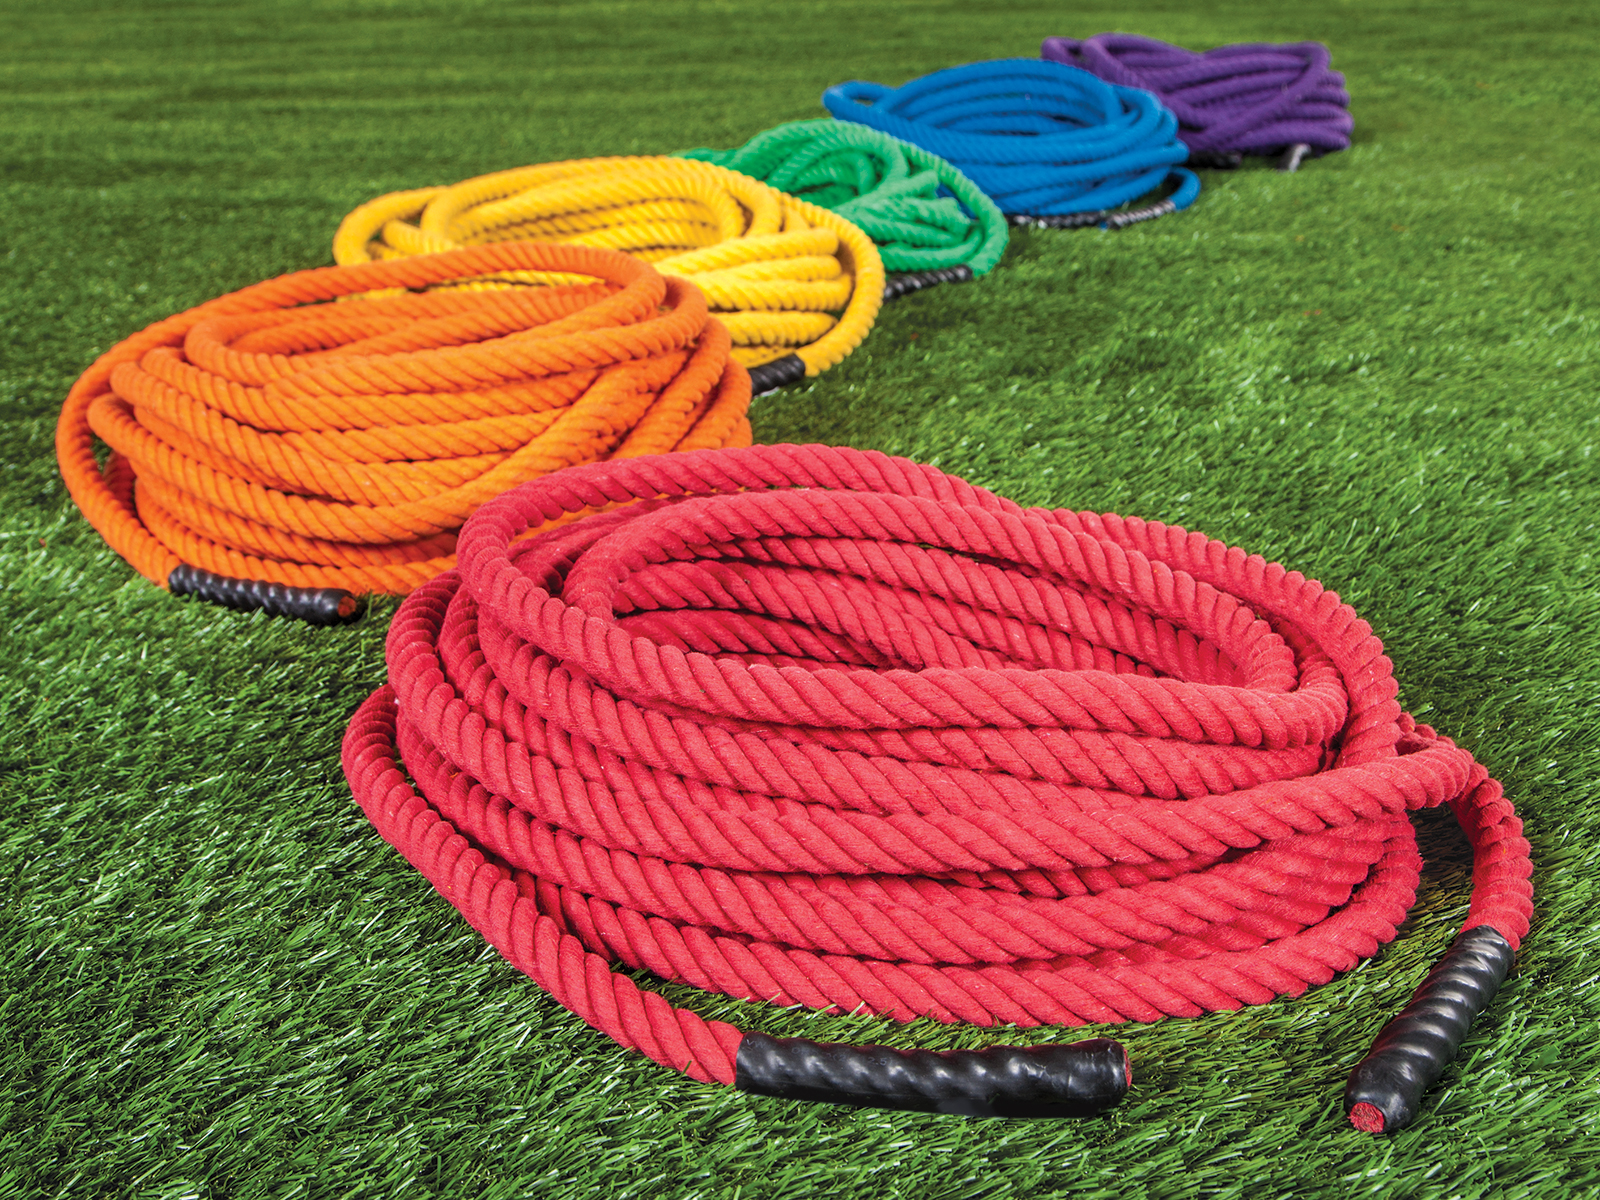 Set of rainbow tug of war ropes in grass